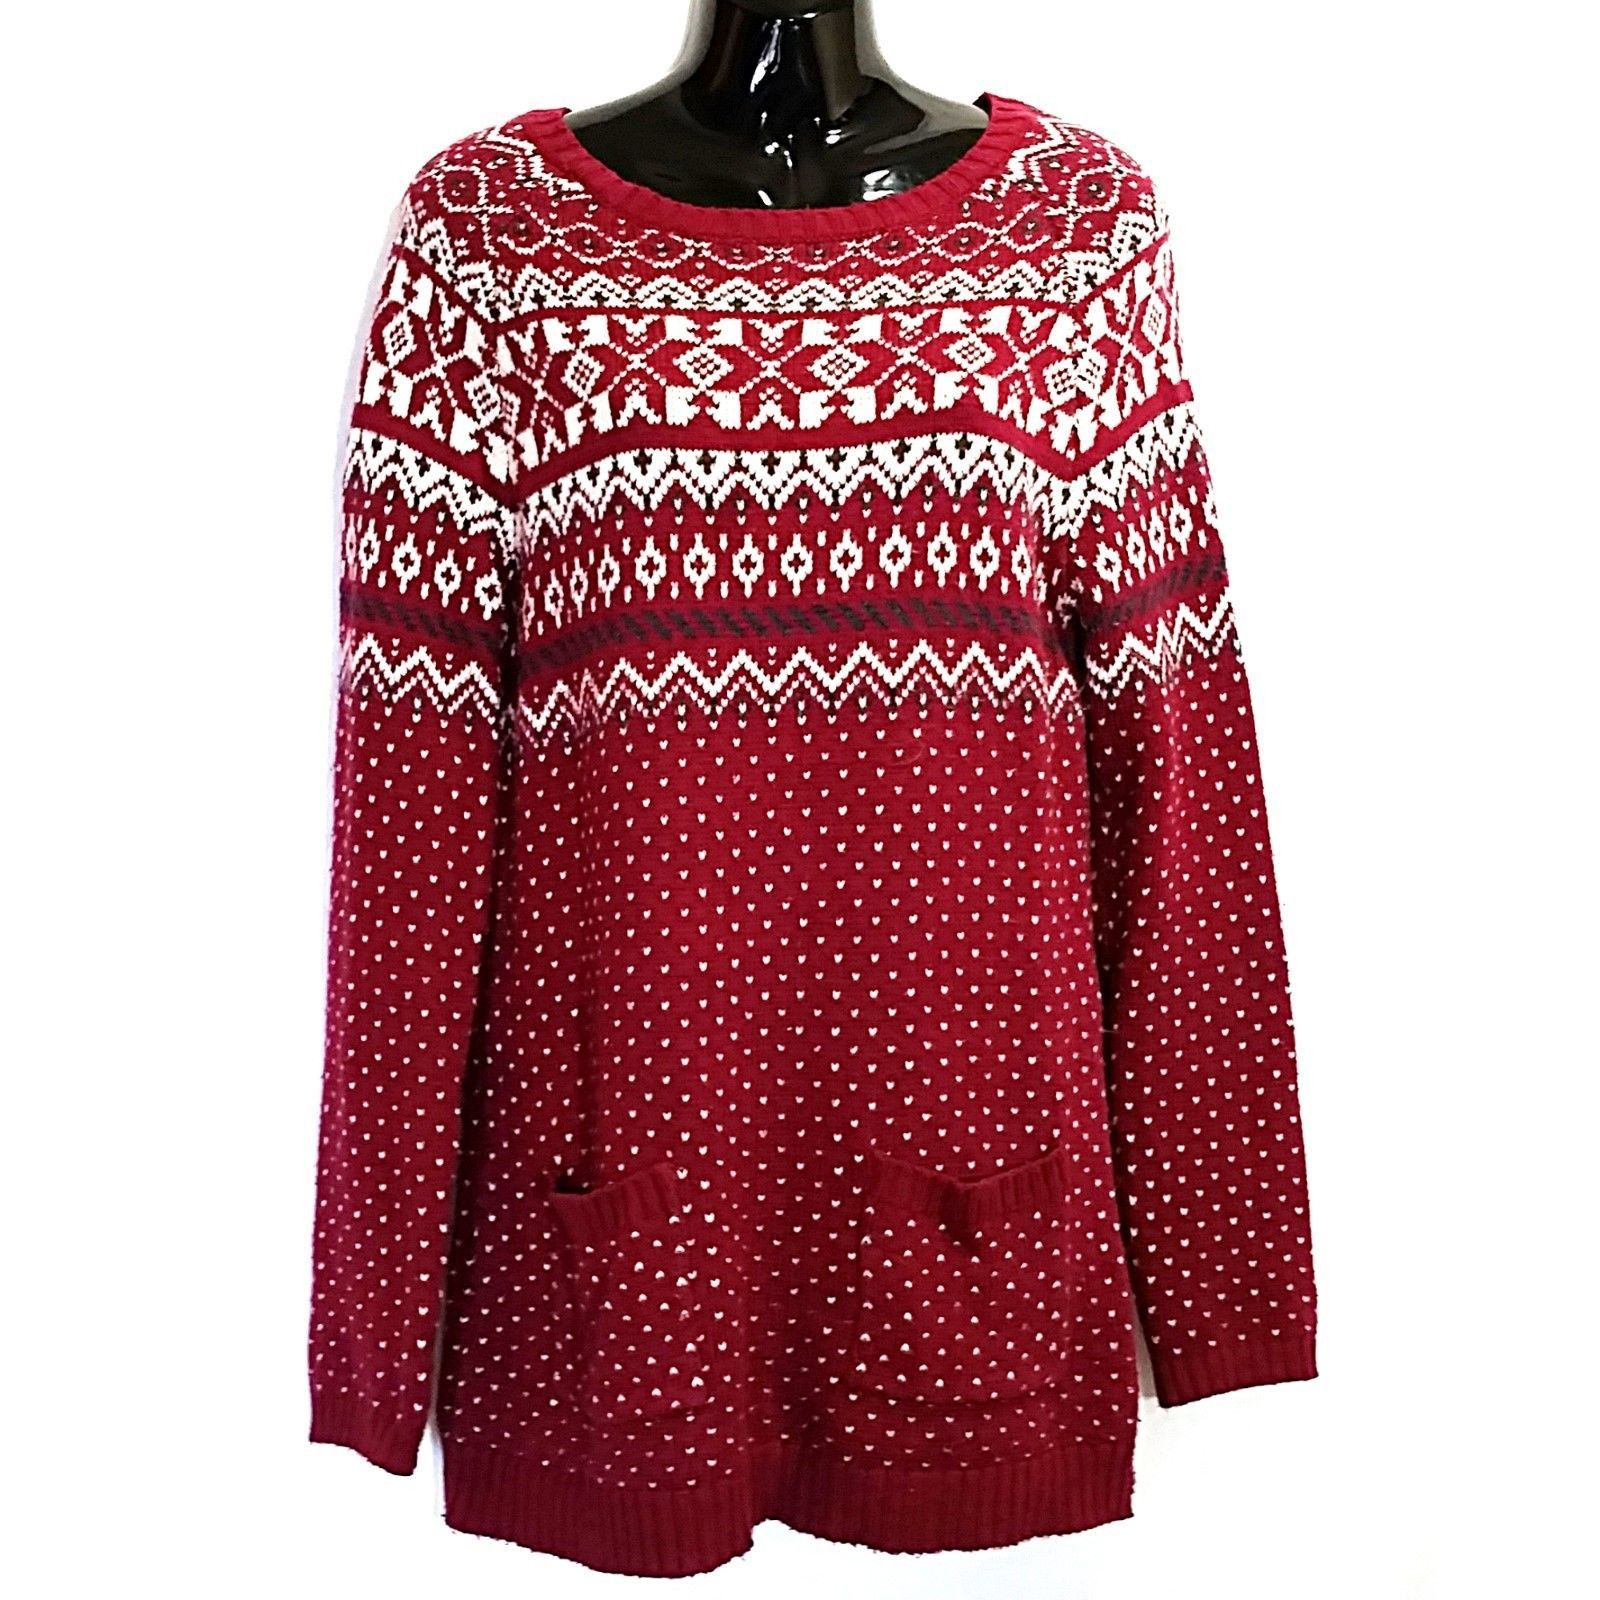 Cranberry Red Fair Isle Sweater Fat Face Womens Size 12 Knit Boat ...